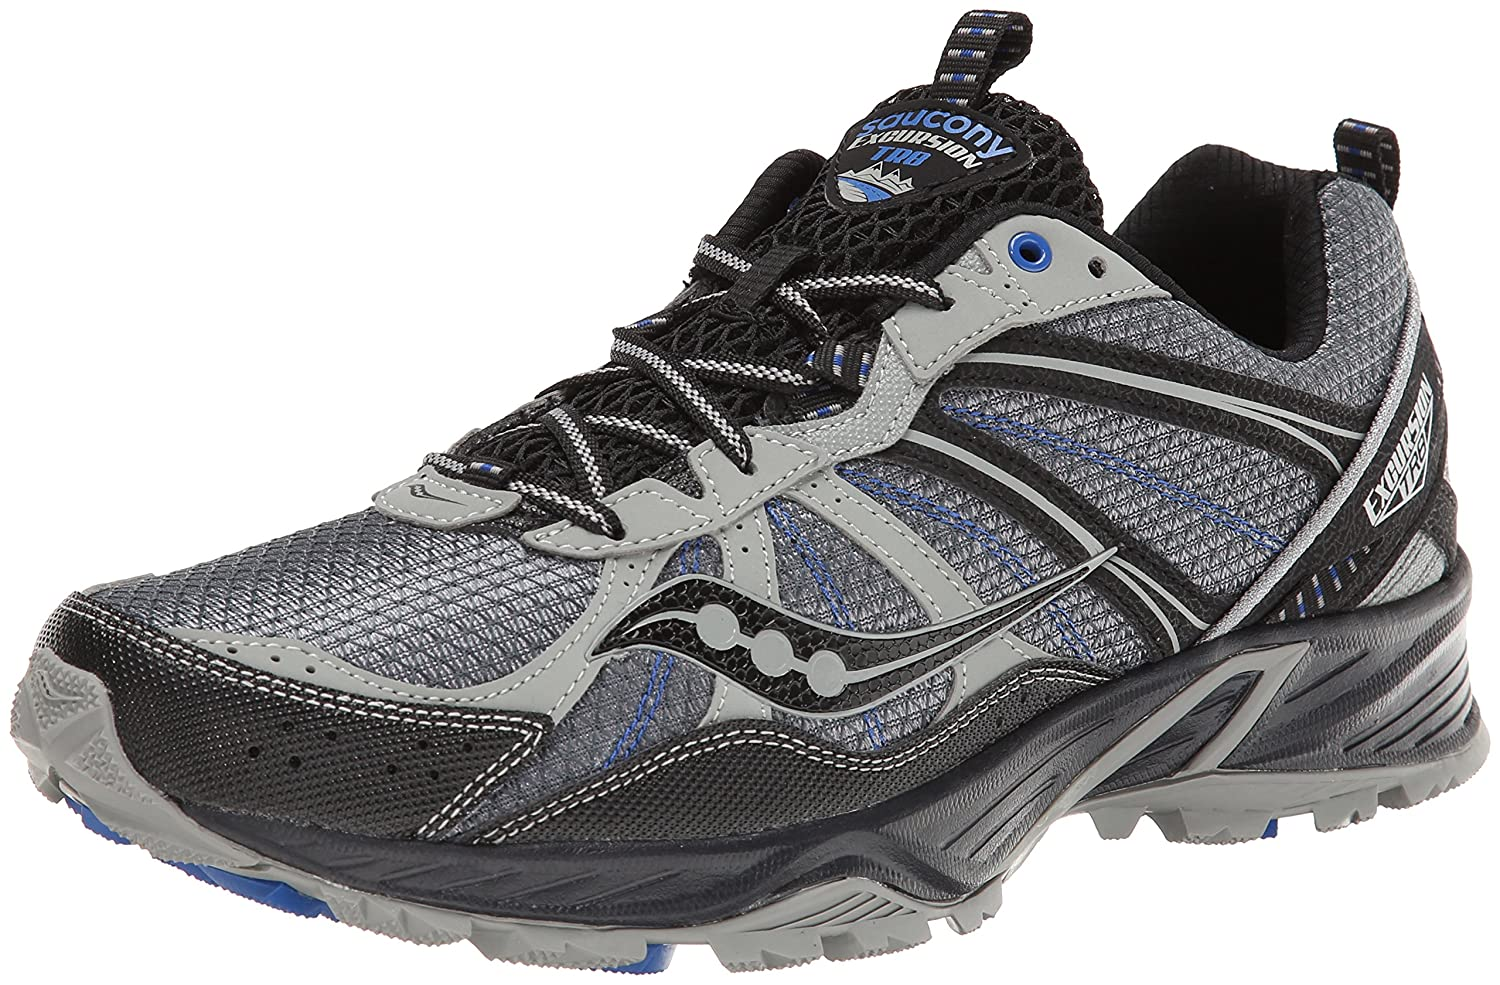 Excursion TR8 Trail Running Shoe - 8.5